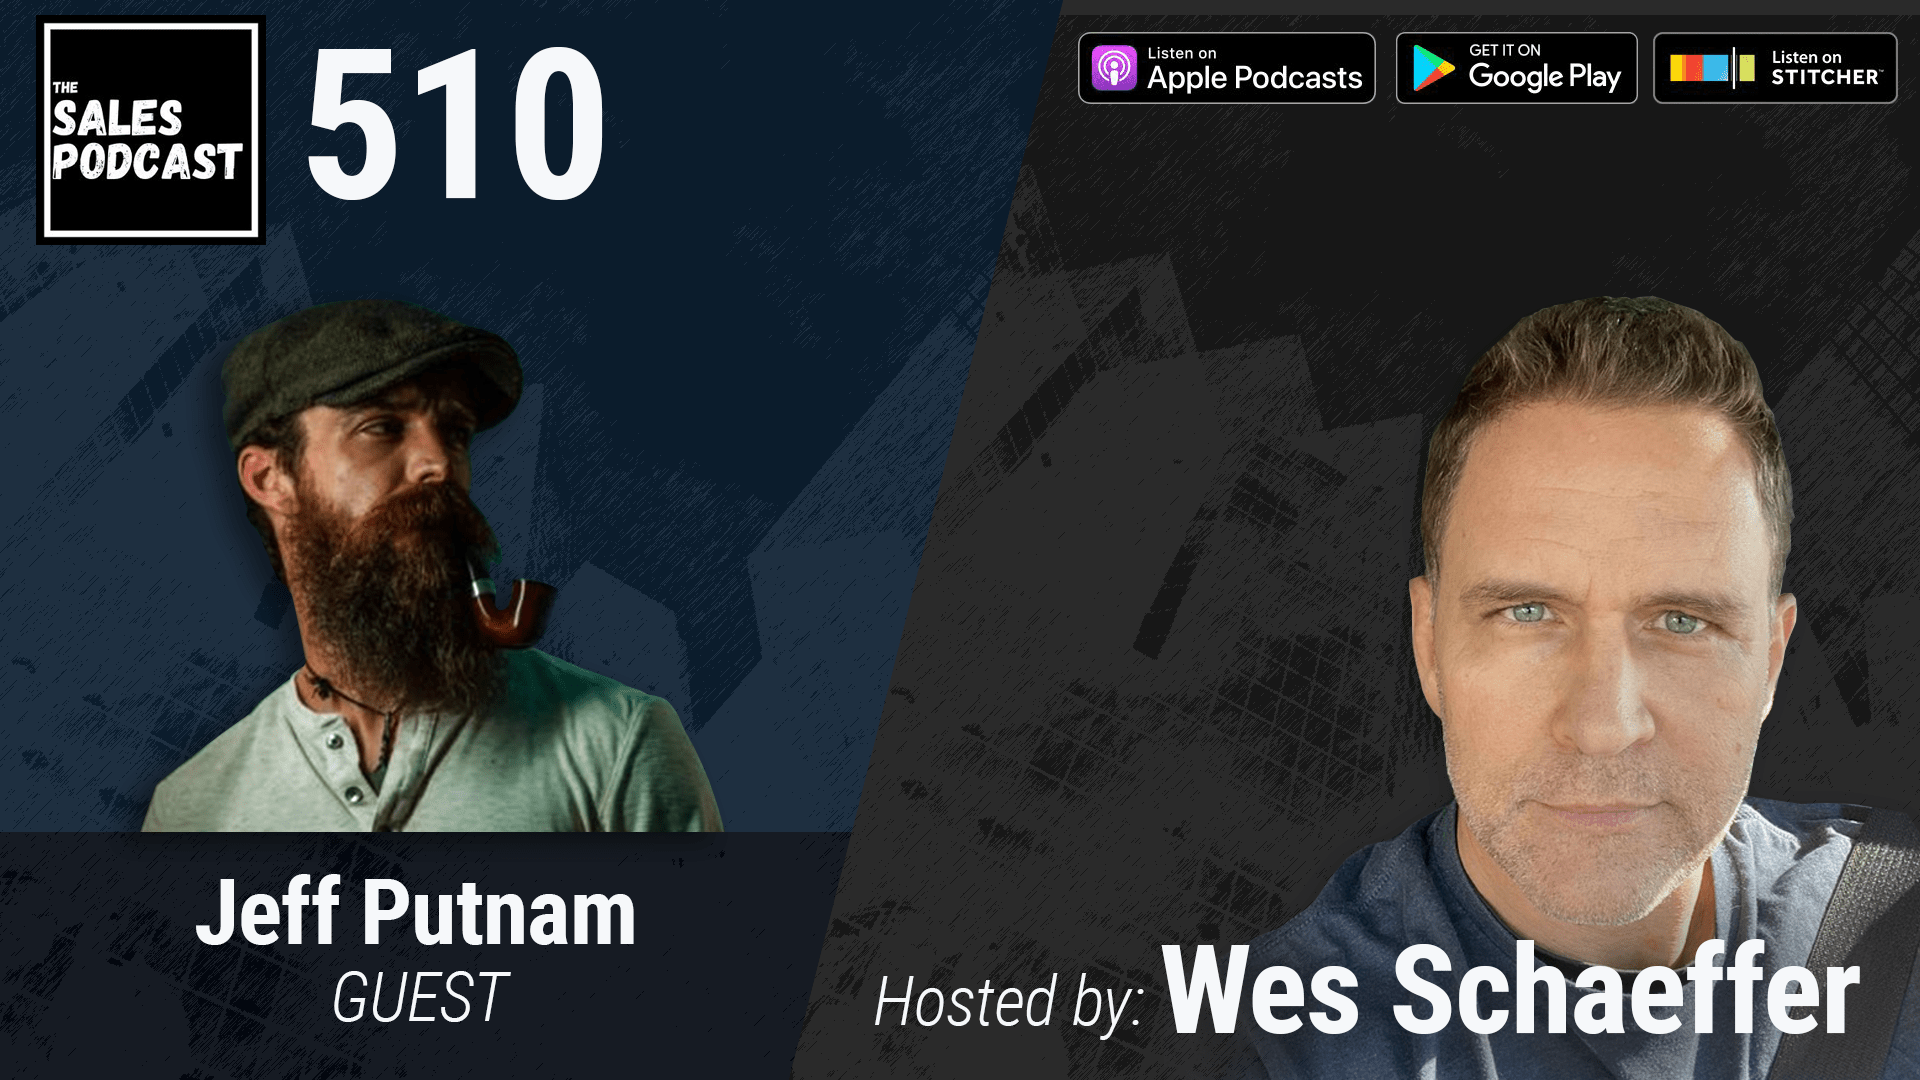 Jeff Putnam on The Sales Podcast with Wes Schaeffer, The Sales Whisperer®